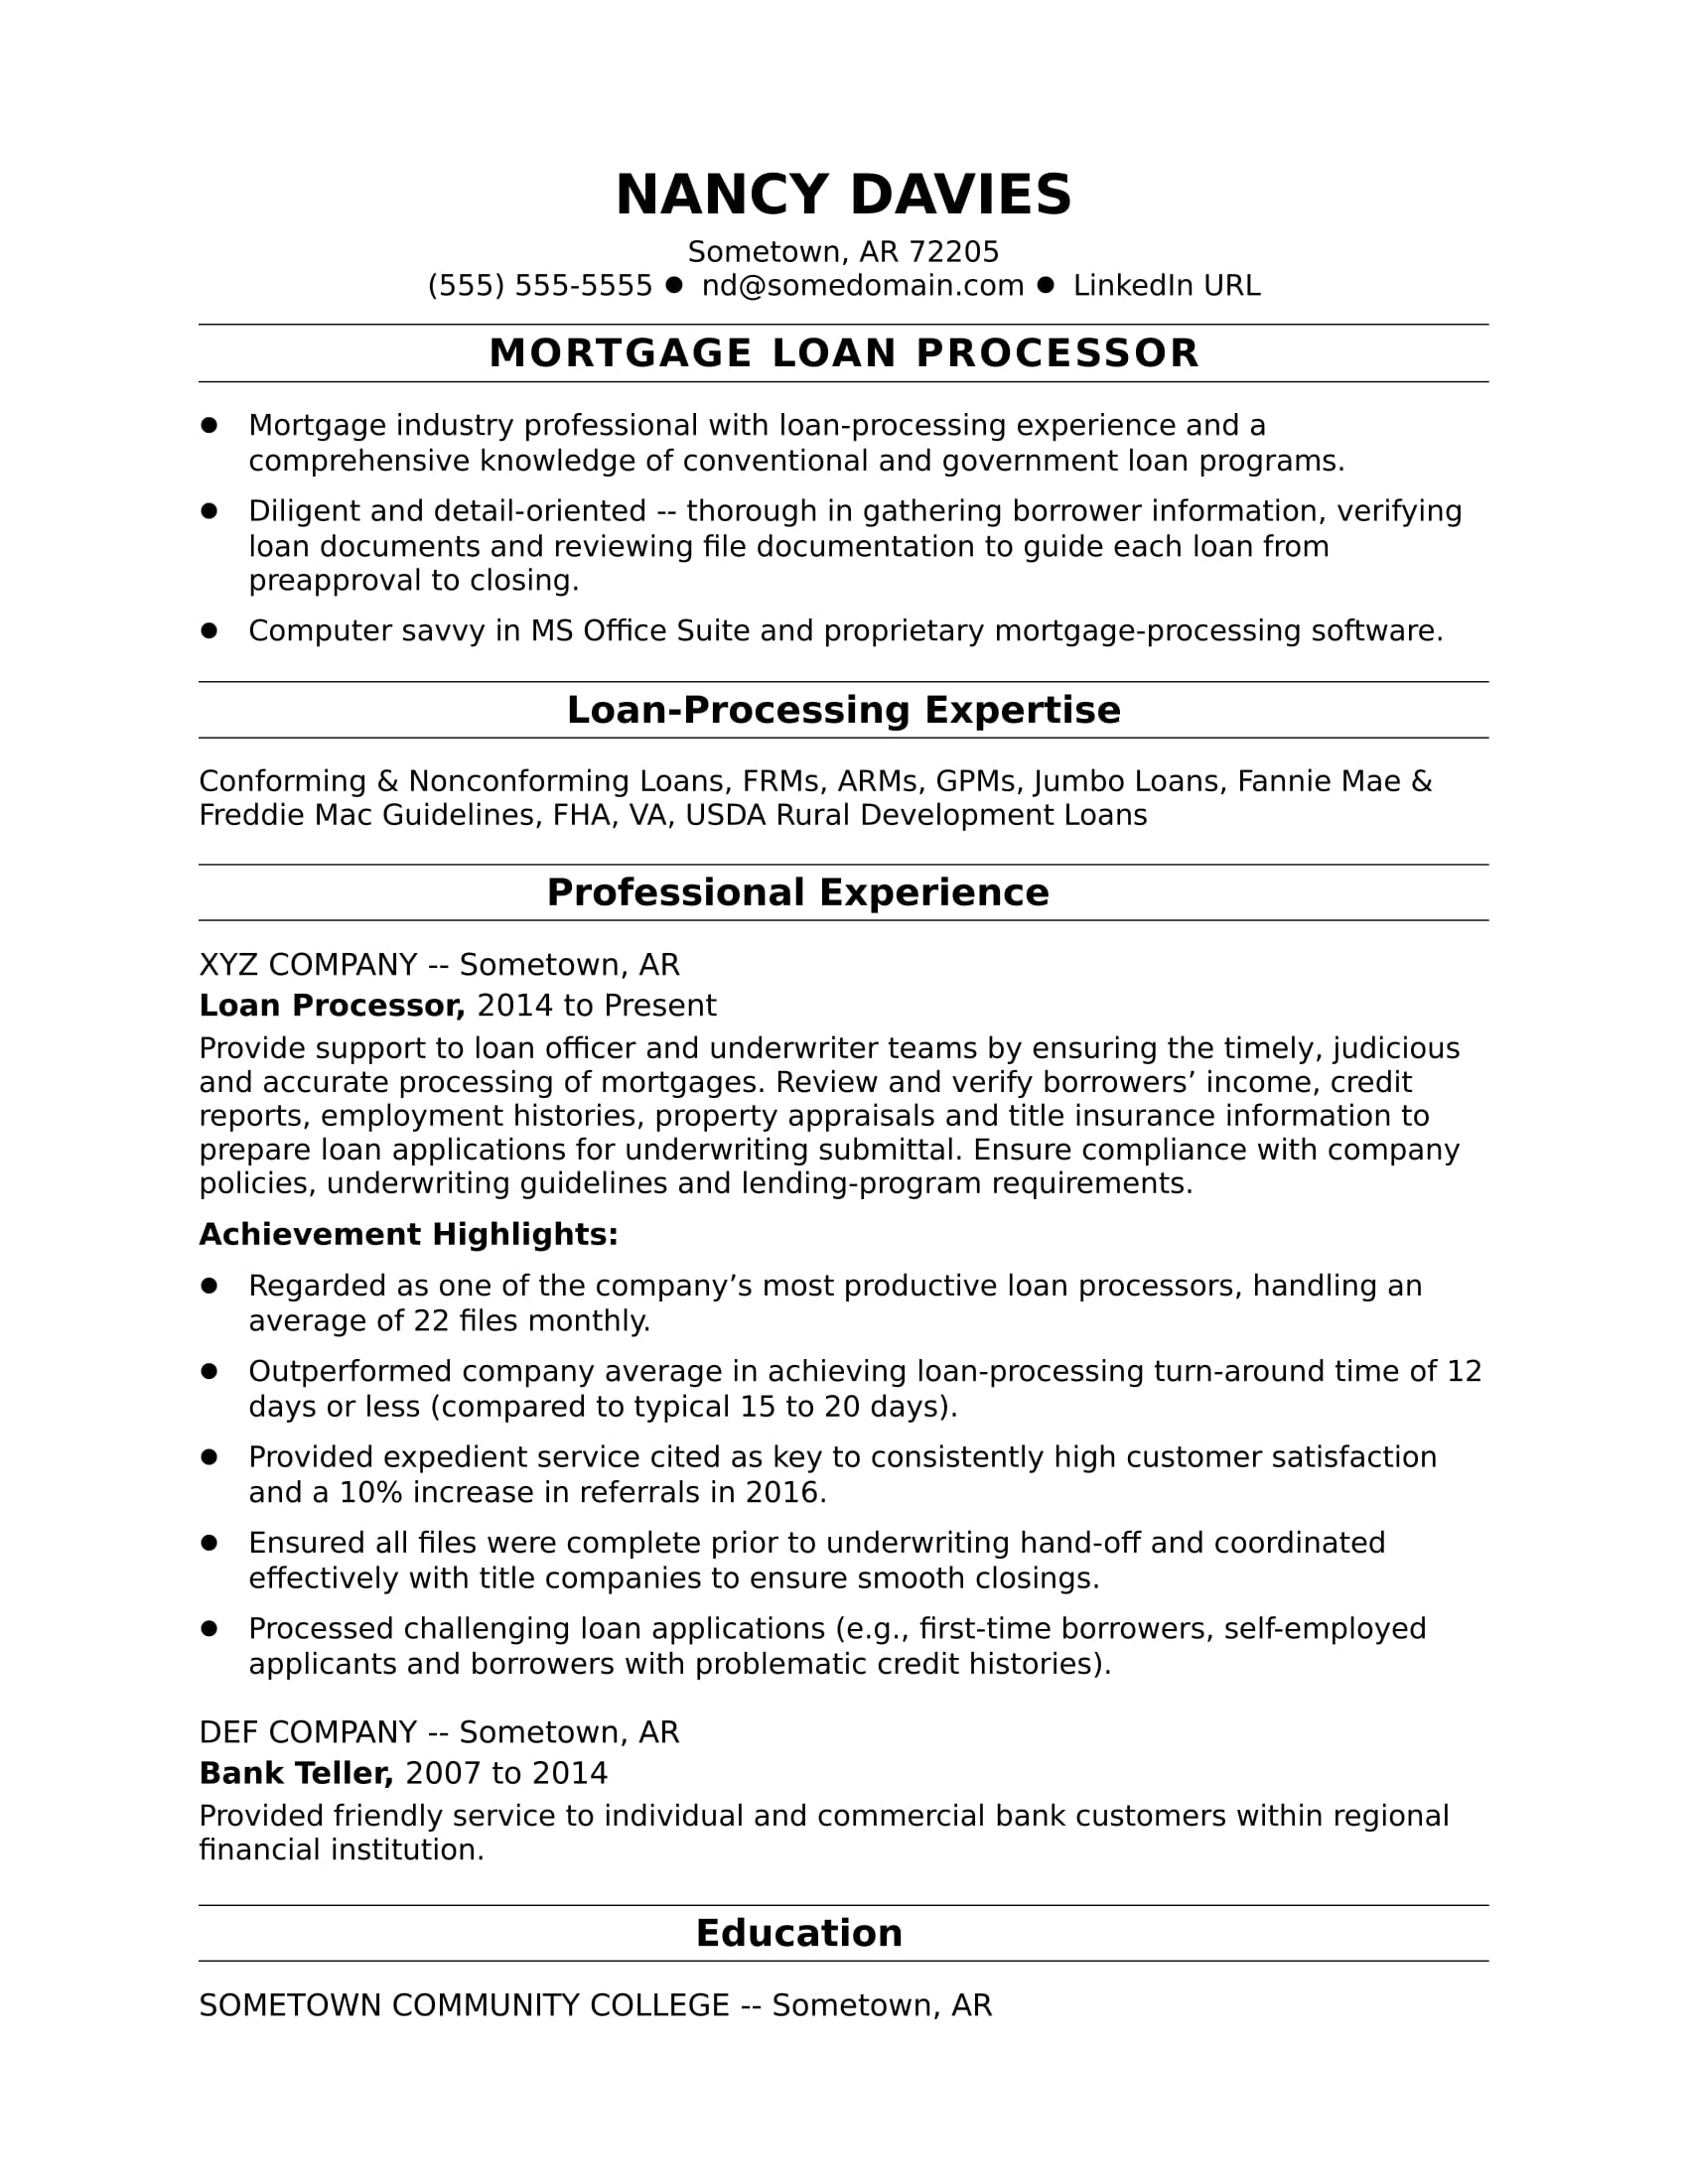 Mortgage Loan Processor Resume Sample | Monster.com